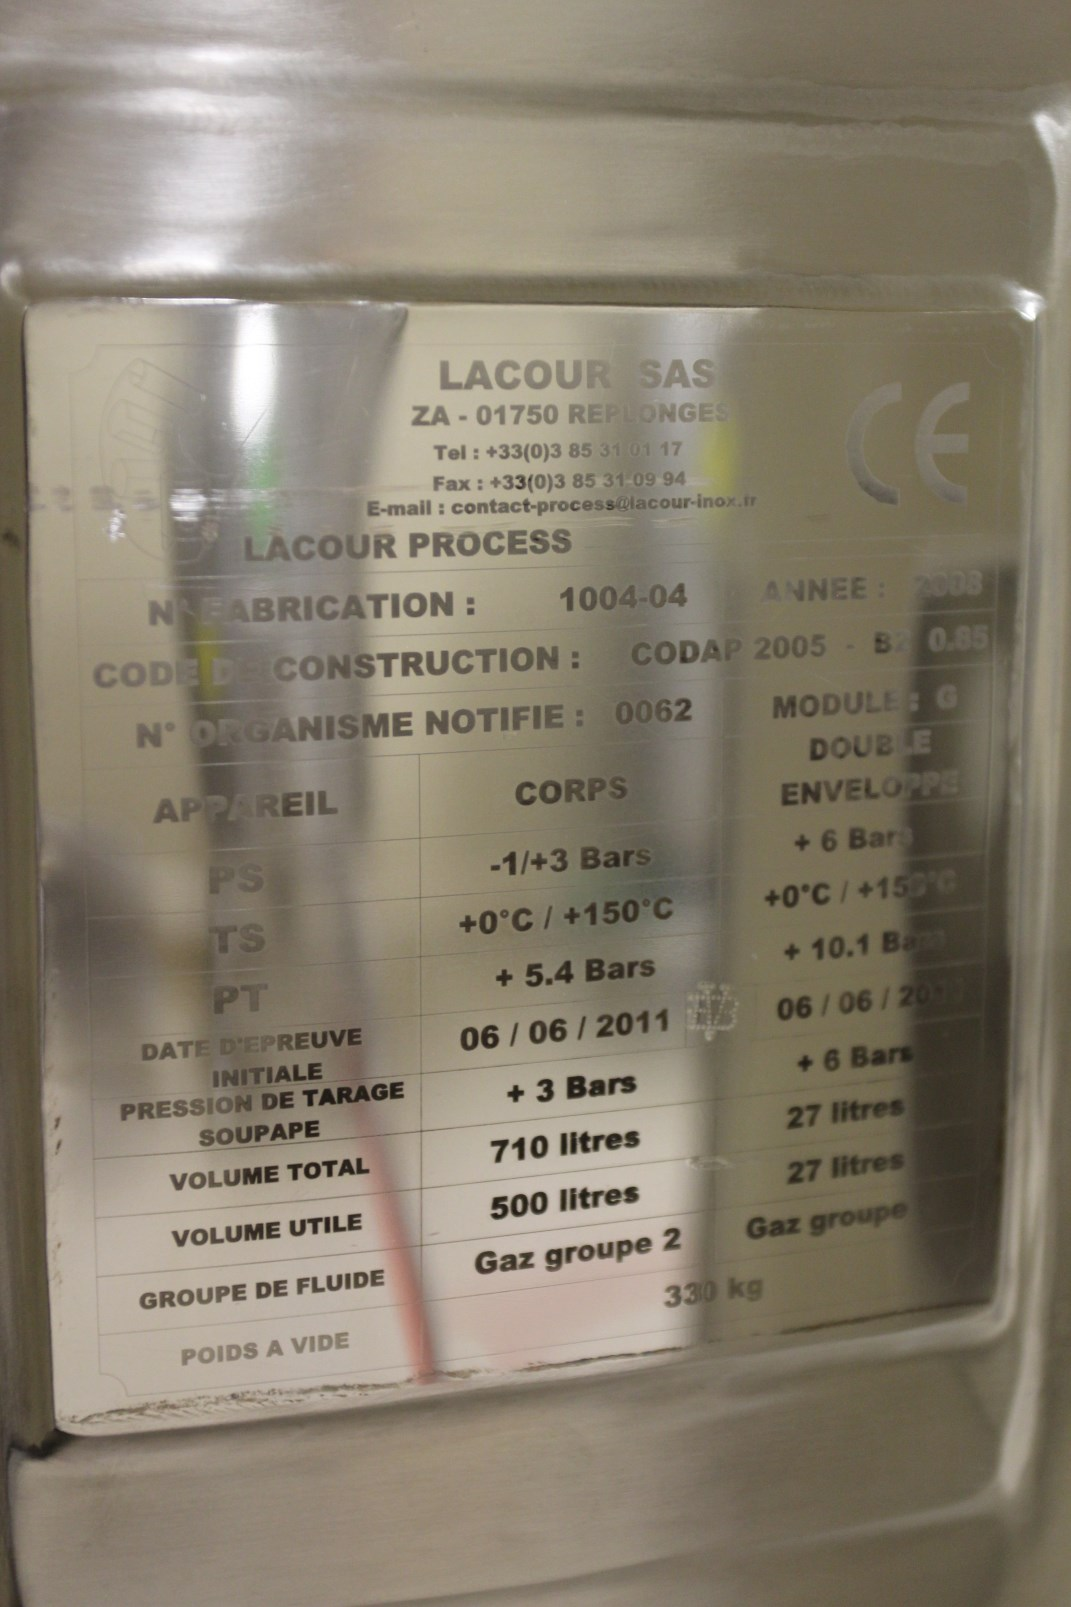 Lot 48 - 2008 Lecour Mobile Vessel, Fabrication No. 1004-04, Stainless Steel Construction, 710 Liter